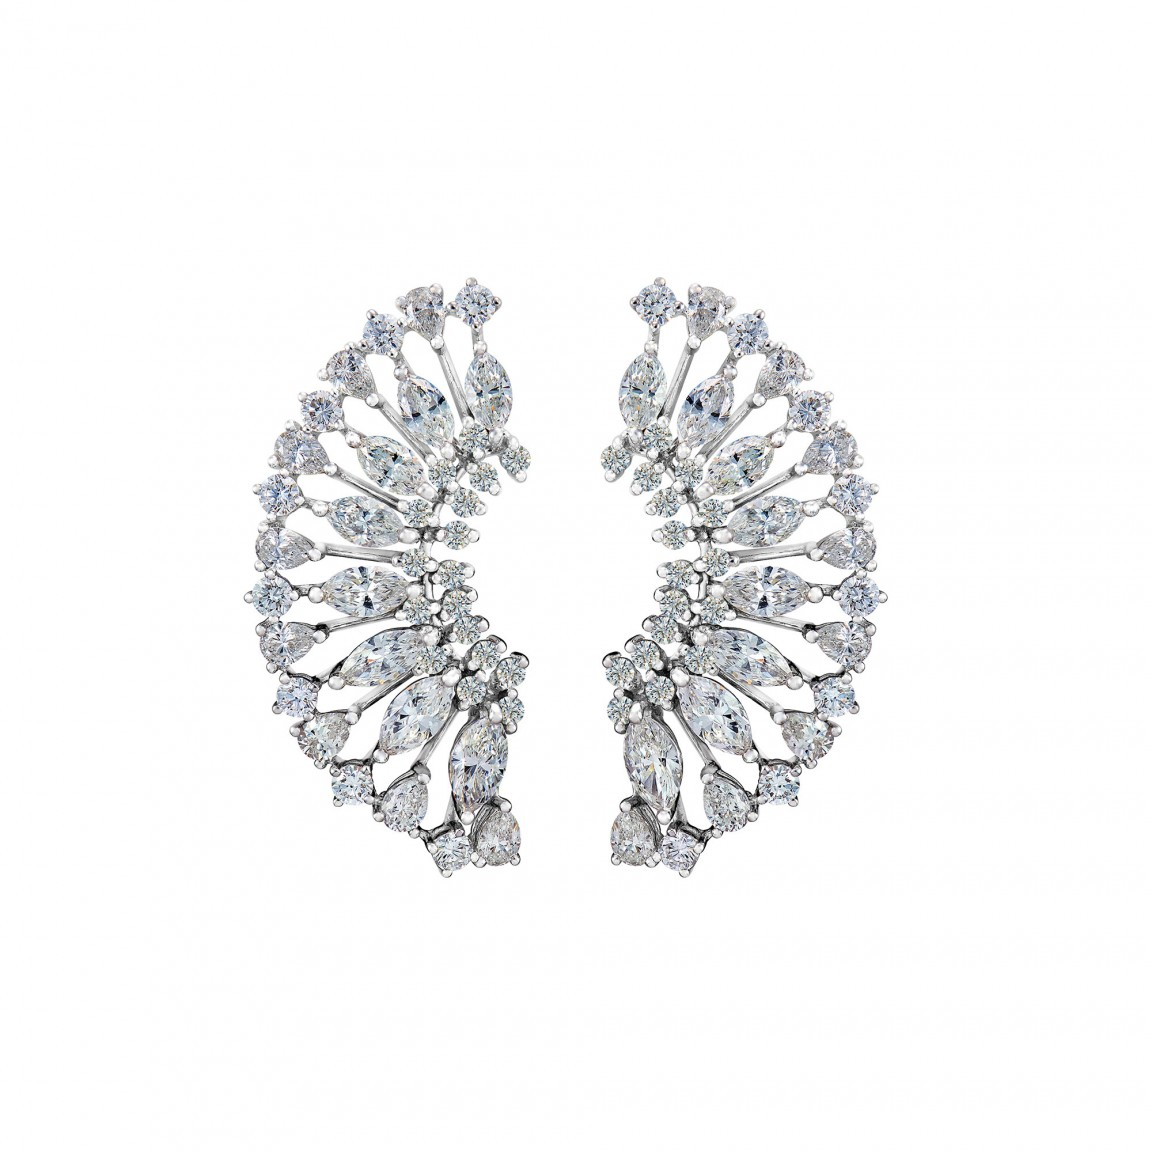 Dazzling Dandelion Diamond Earrings